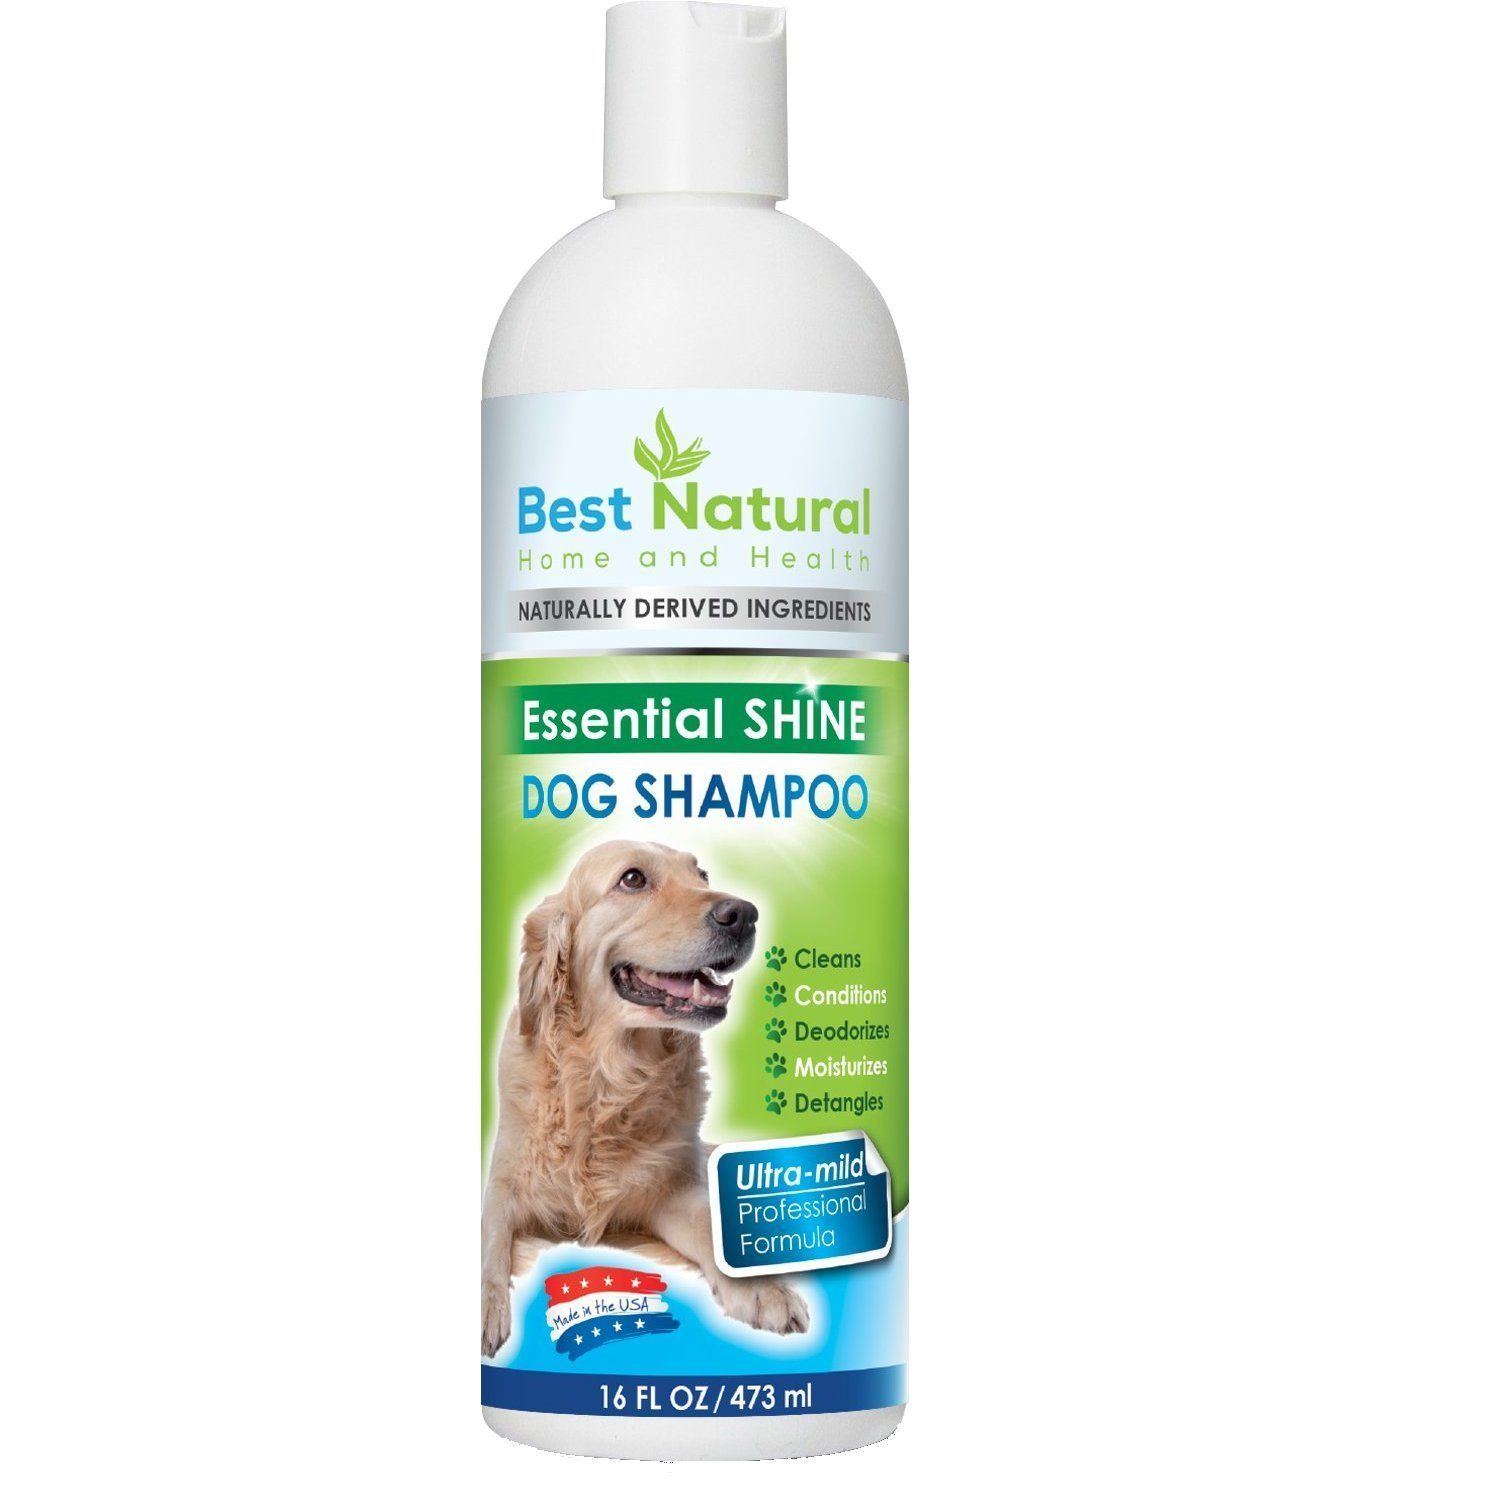 Best Natural Dog Shampoo Reviews